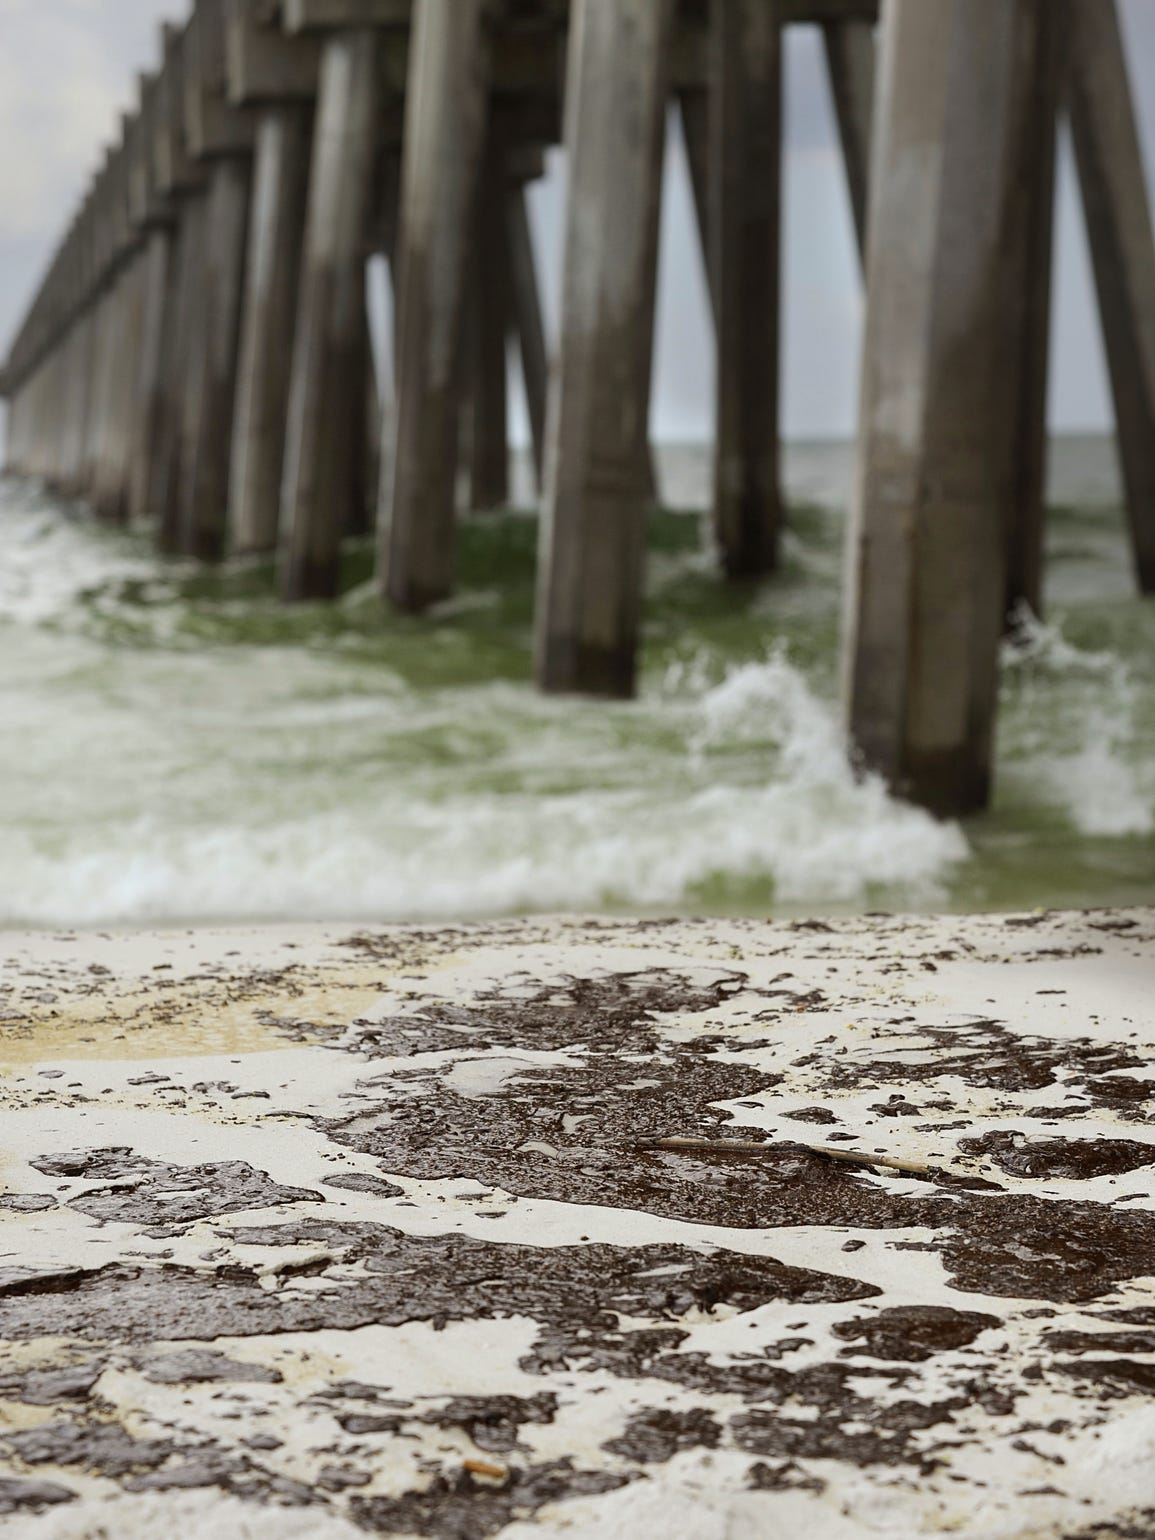 Mats of oil from the Deepwater Horizon oil spill washed